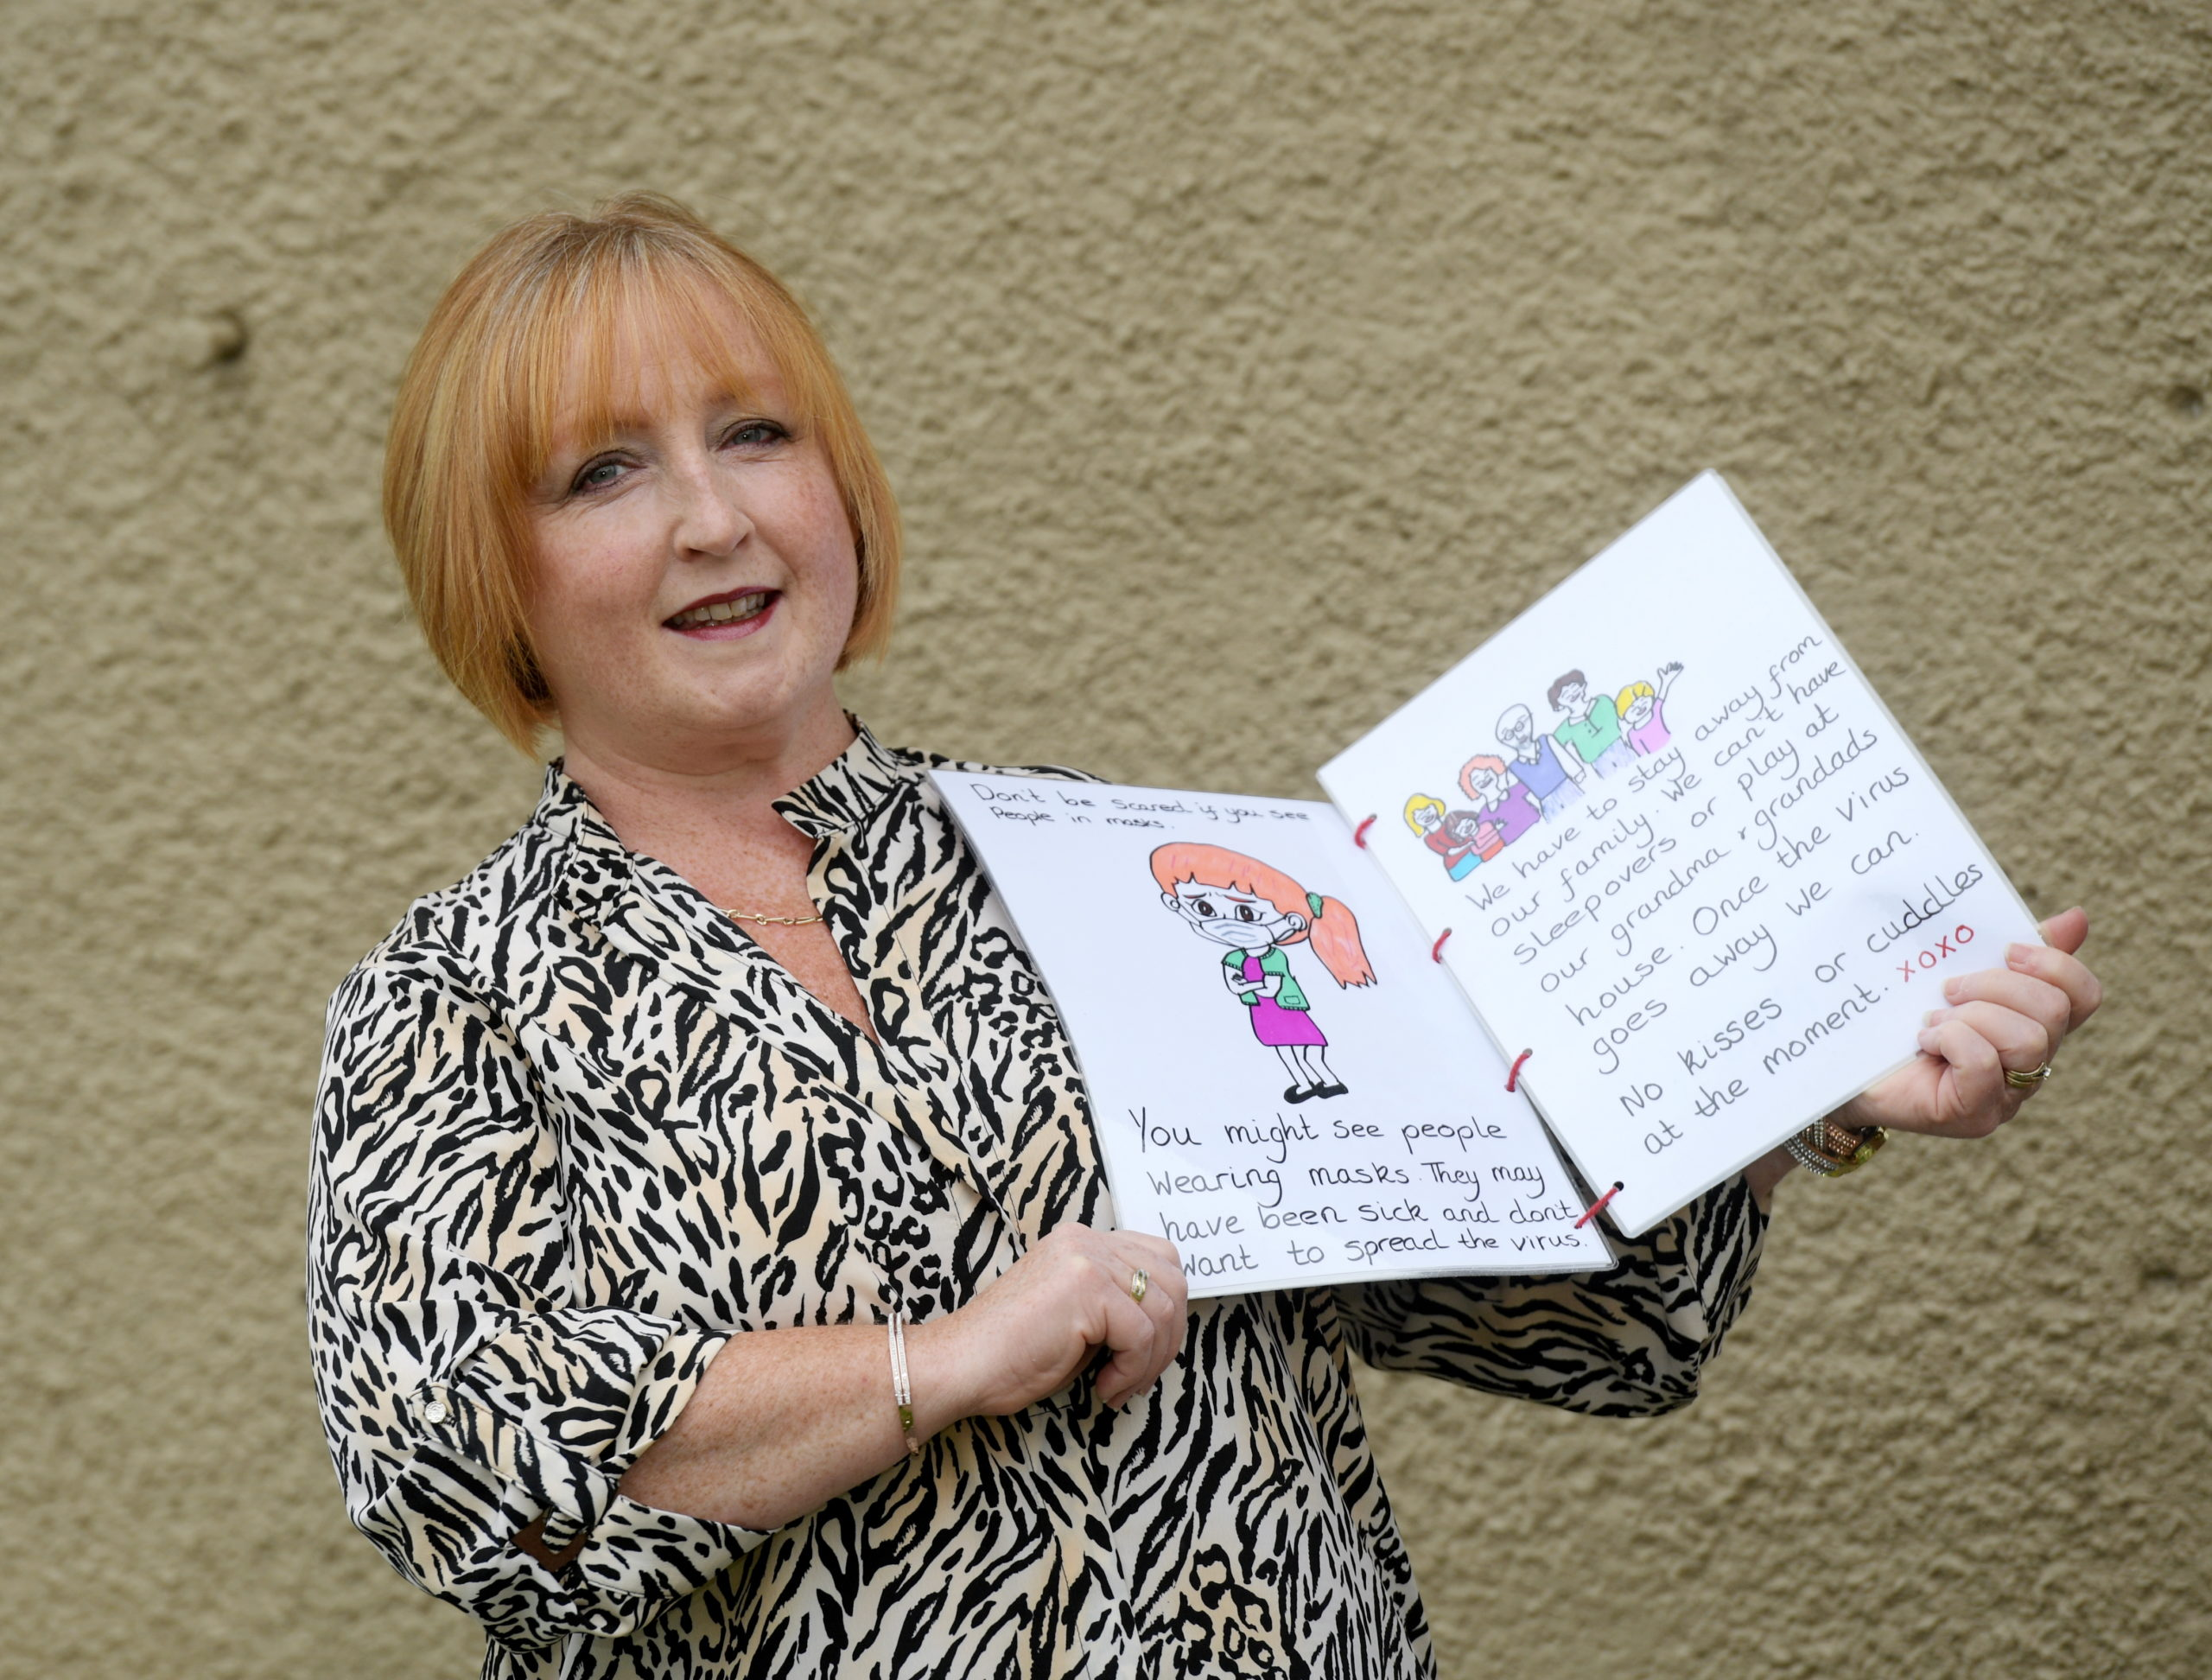 Lesley Morrison has created a book for children to understand the effects of Covid-19